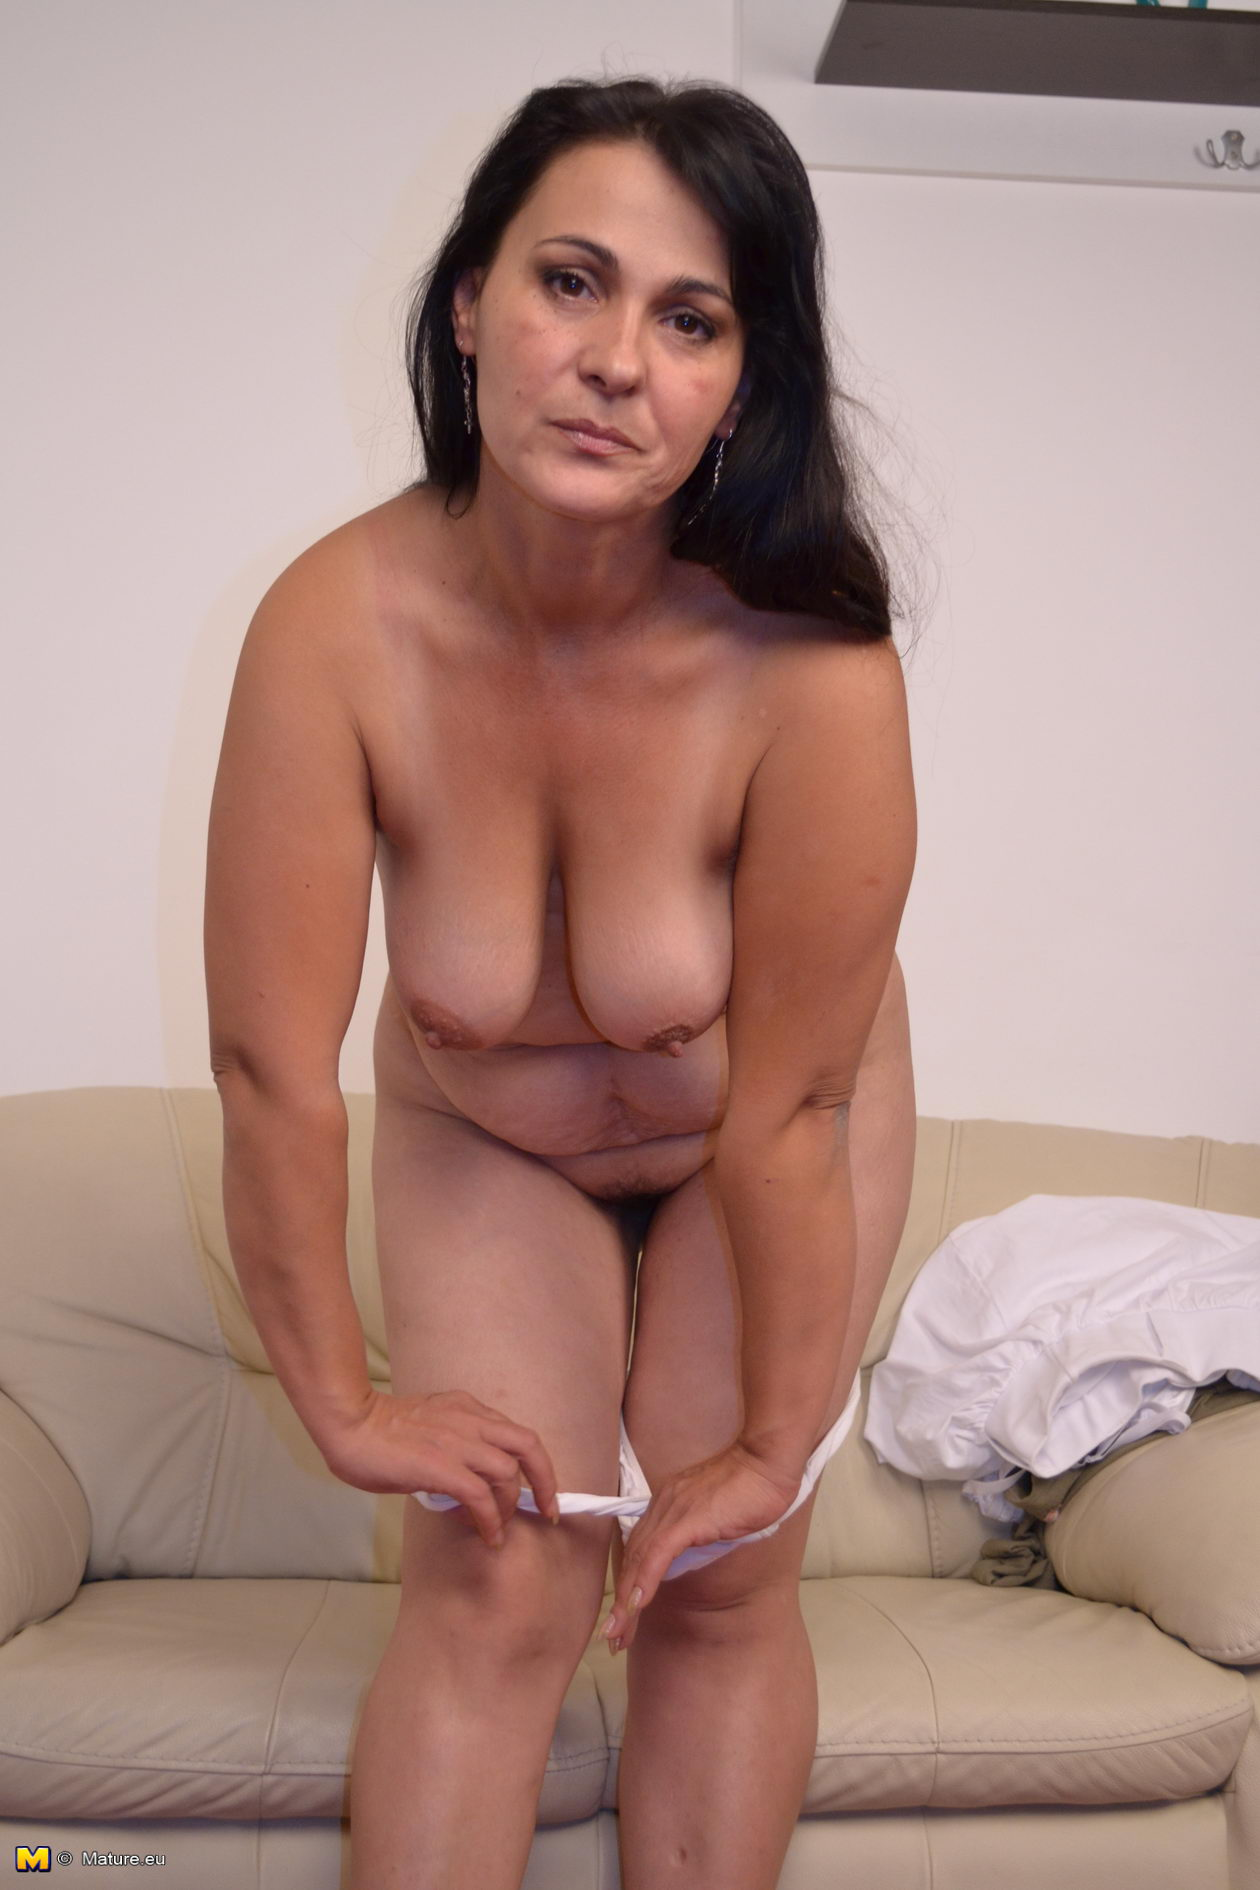 mature women galleries thumbnails - milf